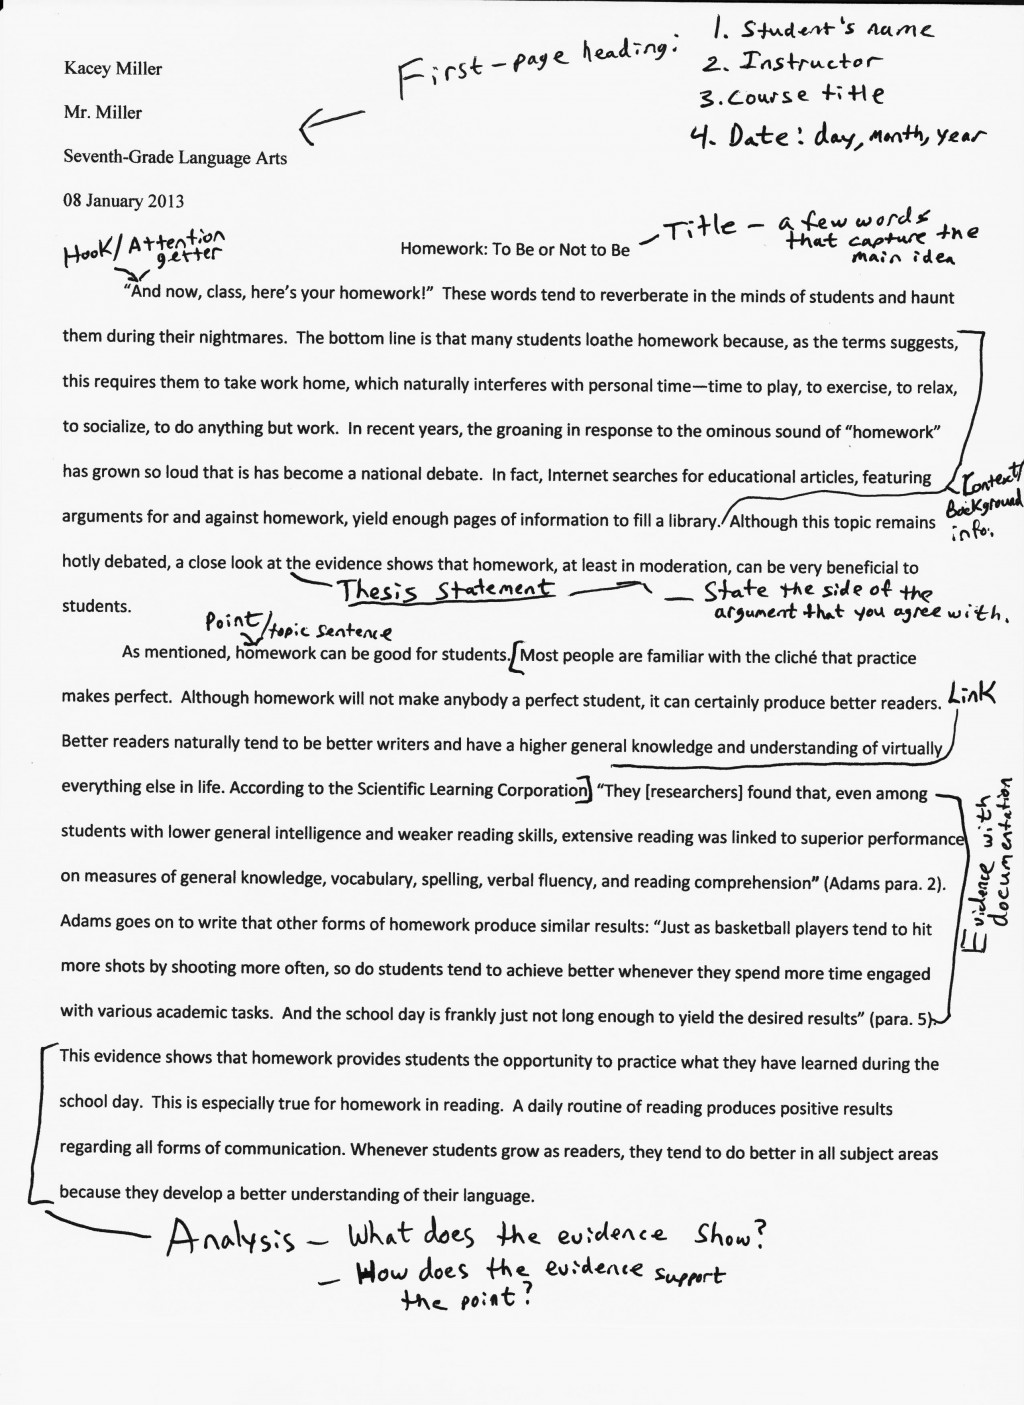 024 Mentor20argument20essay20page20120001 Essay Example Free Awesome Persuasive Outline Template On Texting While Driving Examples Large